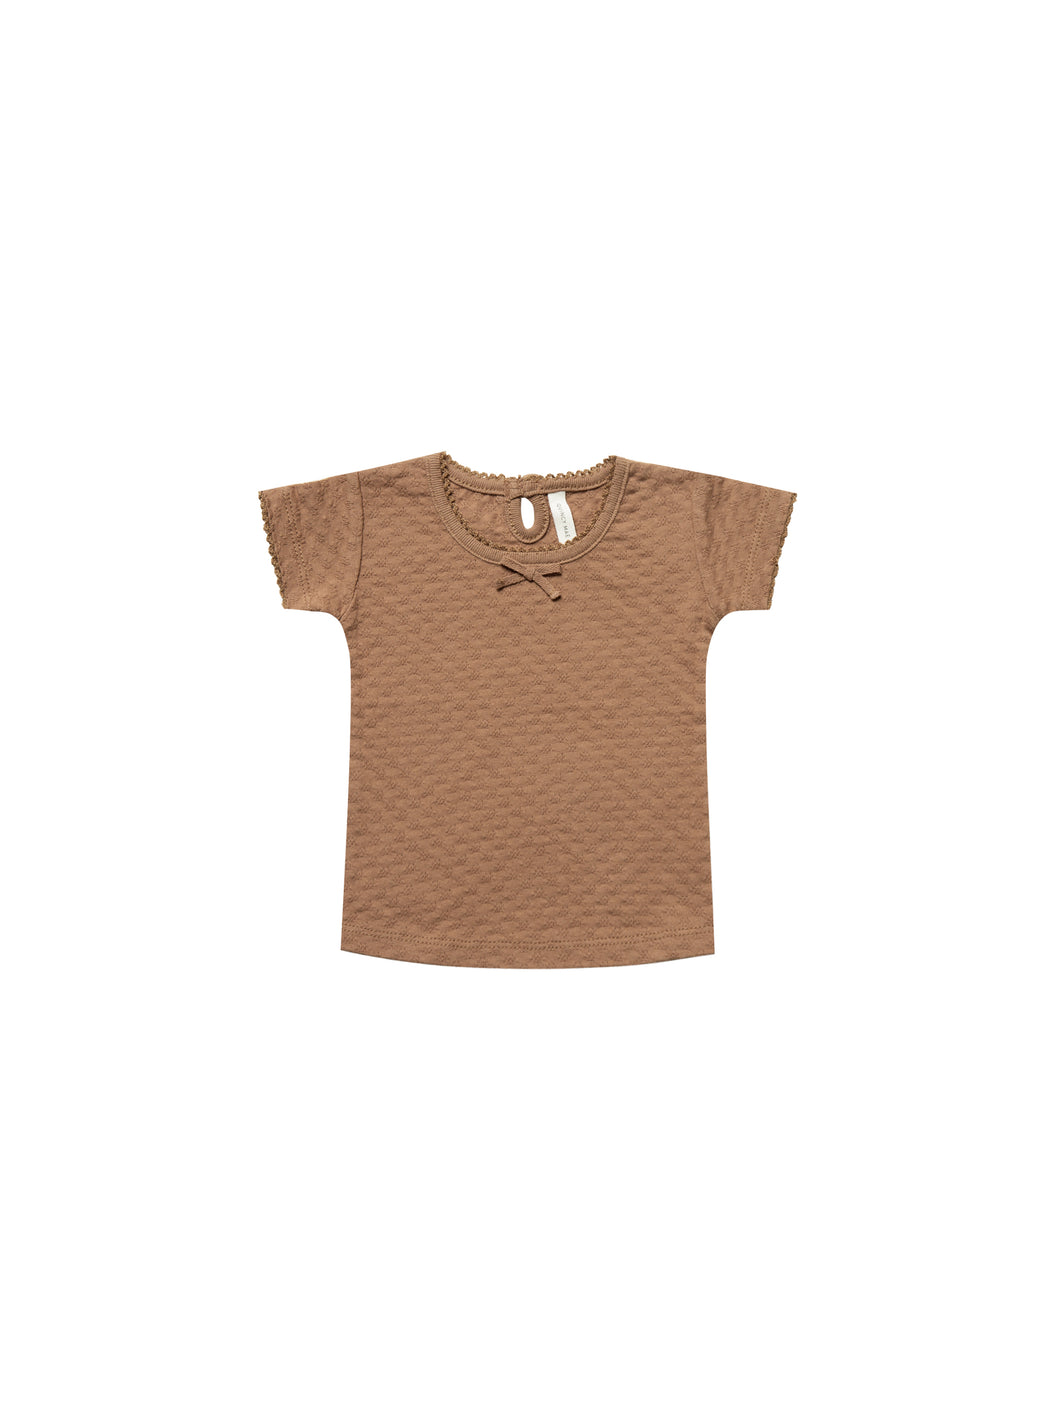 Pointelle Tee - Copper